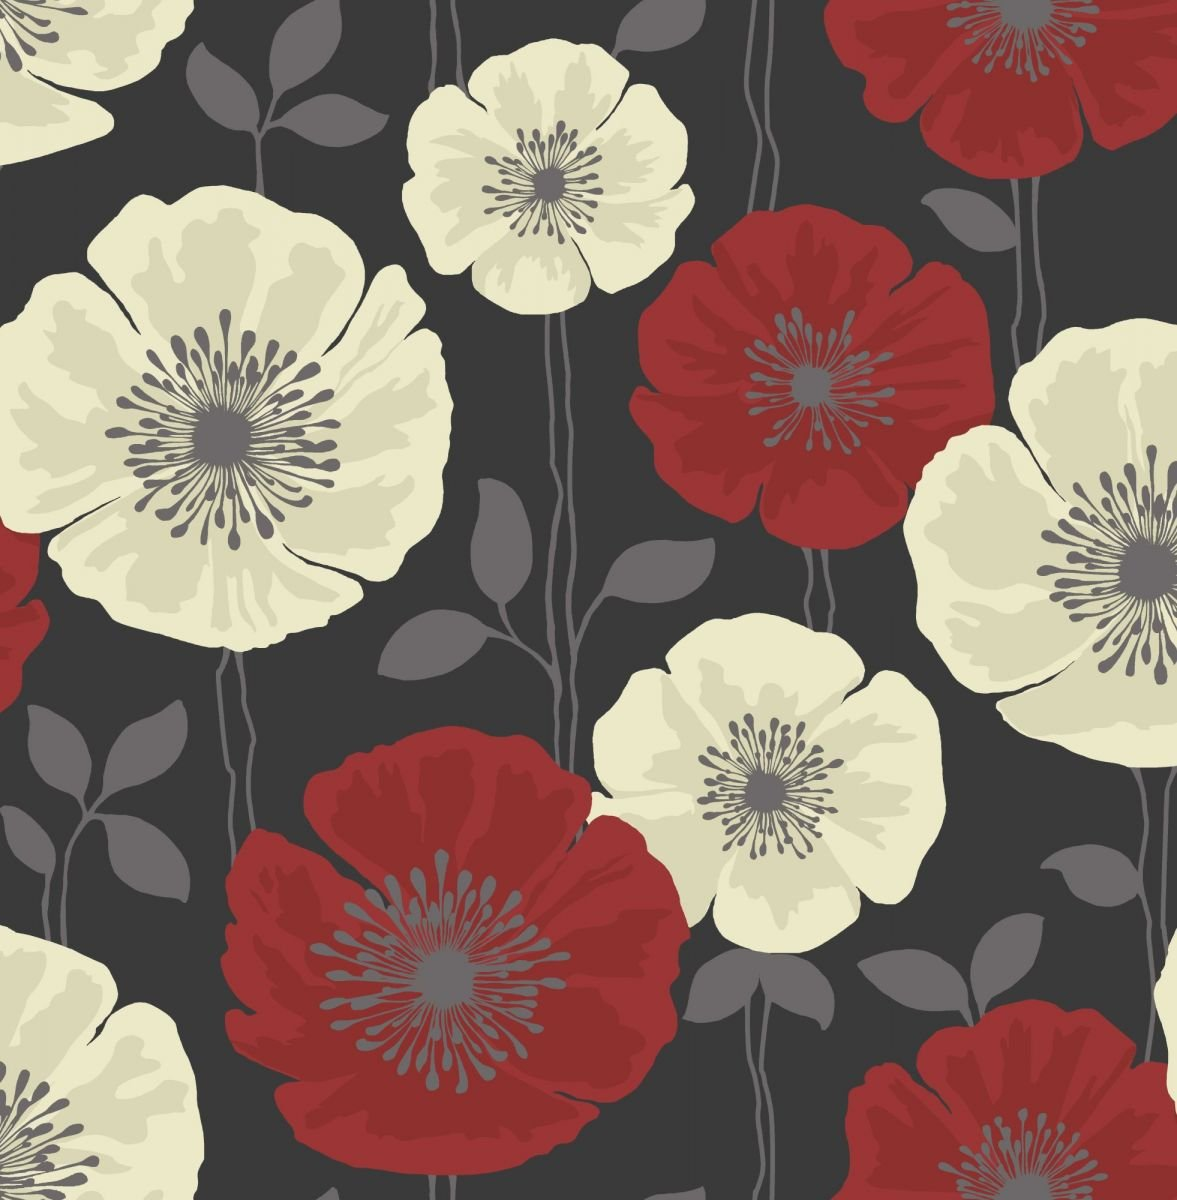 Fine decor poppie red and black motif floral wallpaper fd14868 fine decor poppie red and black motif floral wallpaper fd14868 amazon diy tools mightylinksfo